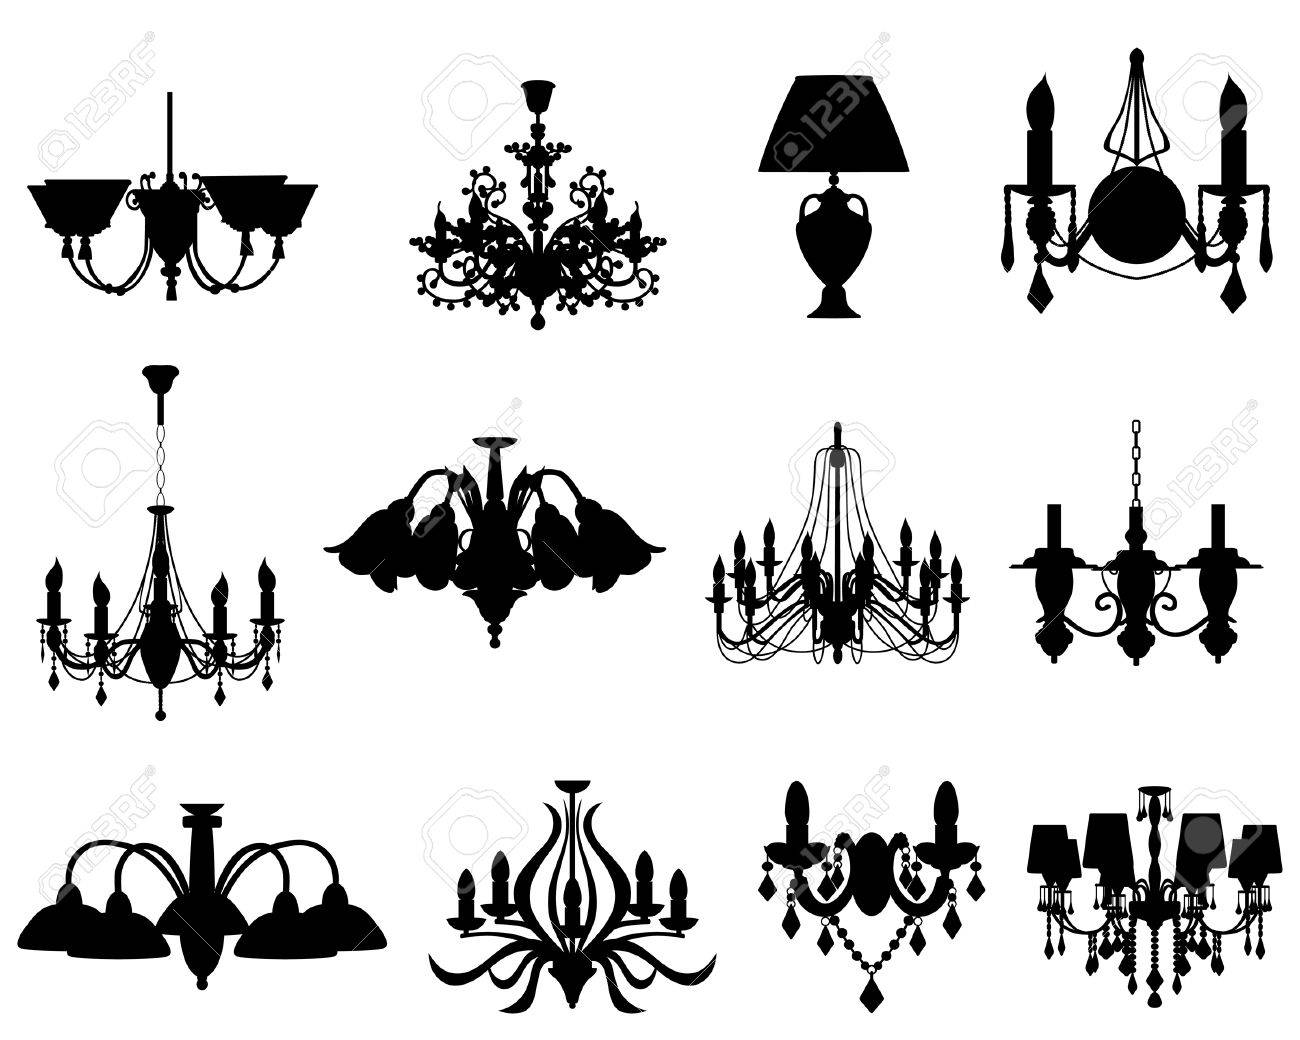 Set of different lamps silhouettes. - 6460541